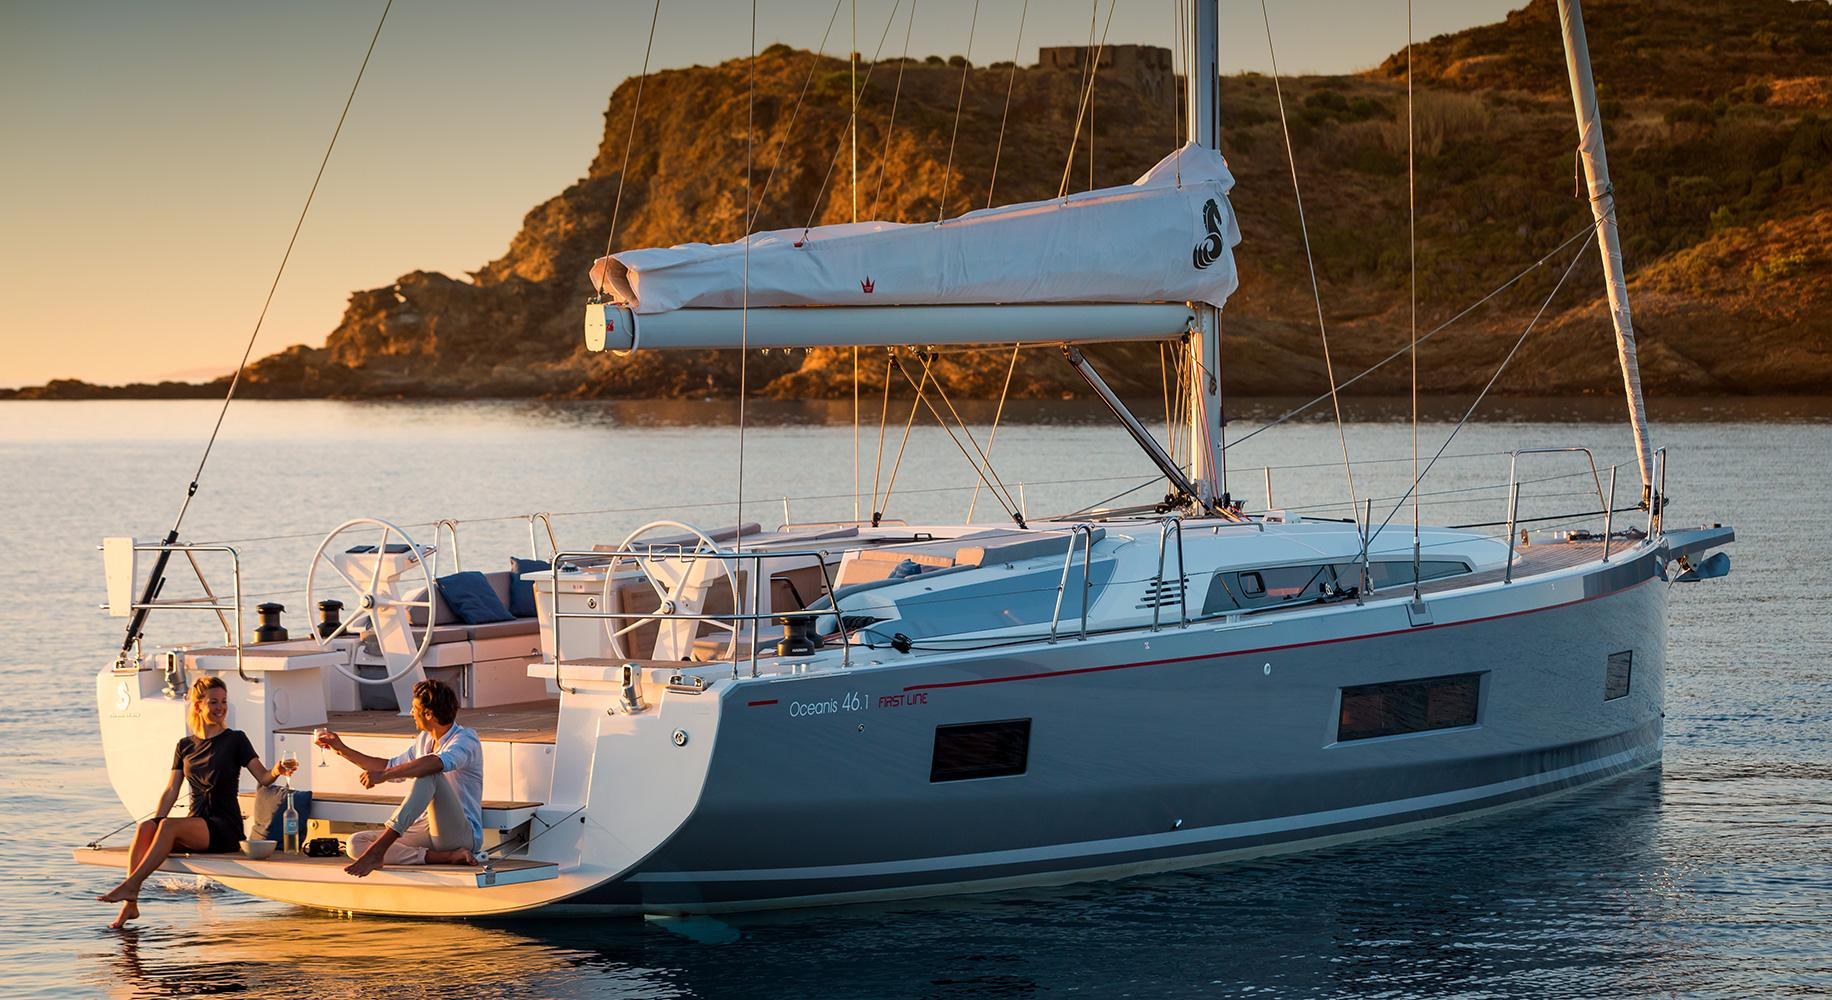 Beneteau Oceanis 46.1 - In Stock